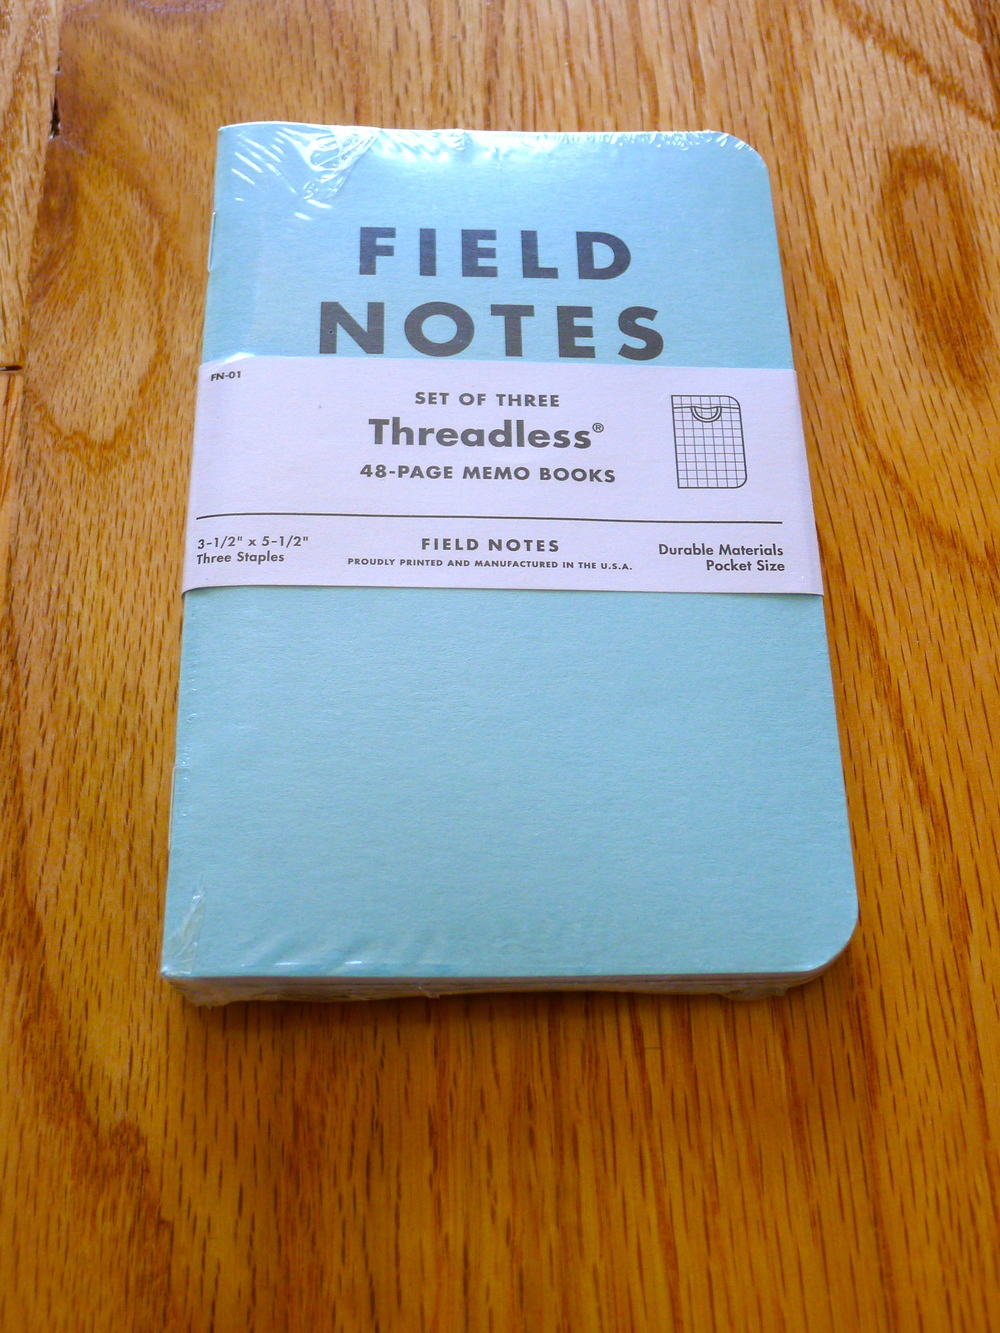 Field Notes Threadless Special Edition